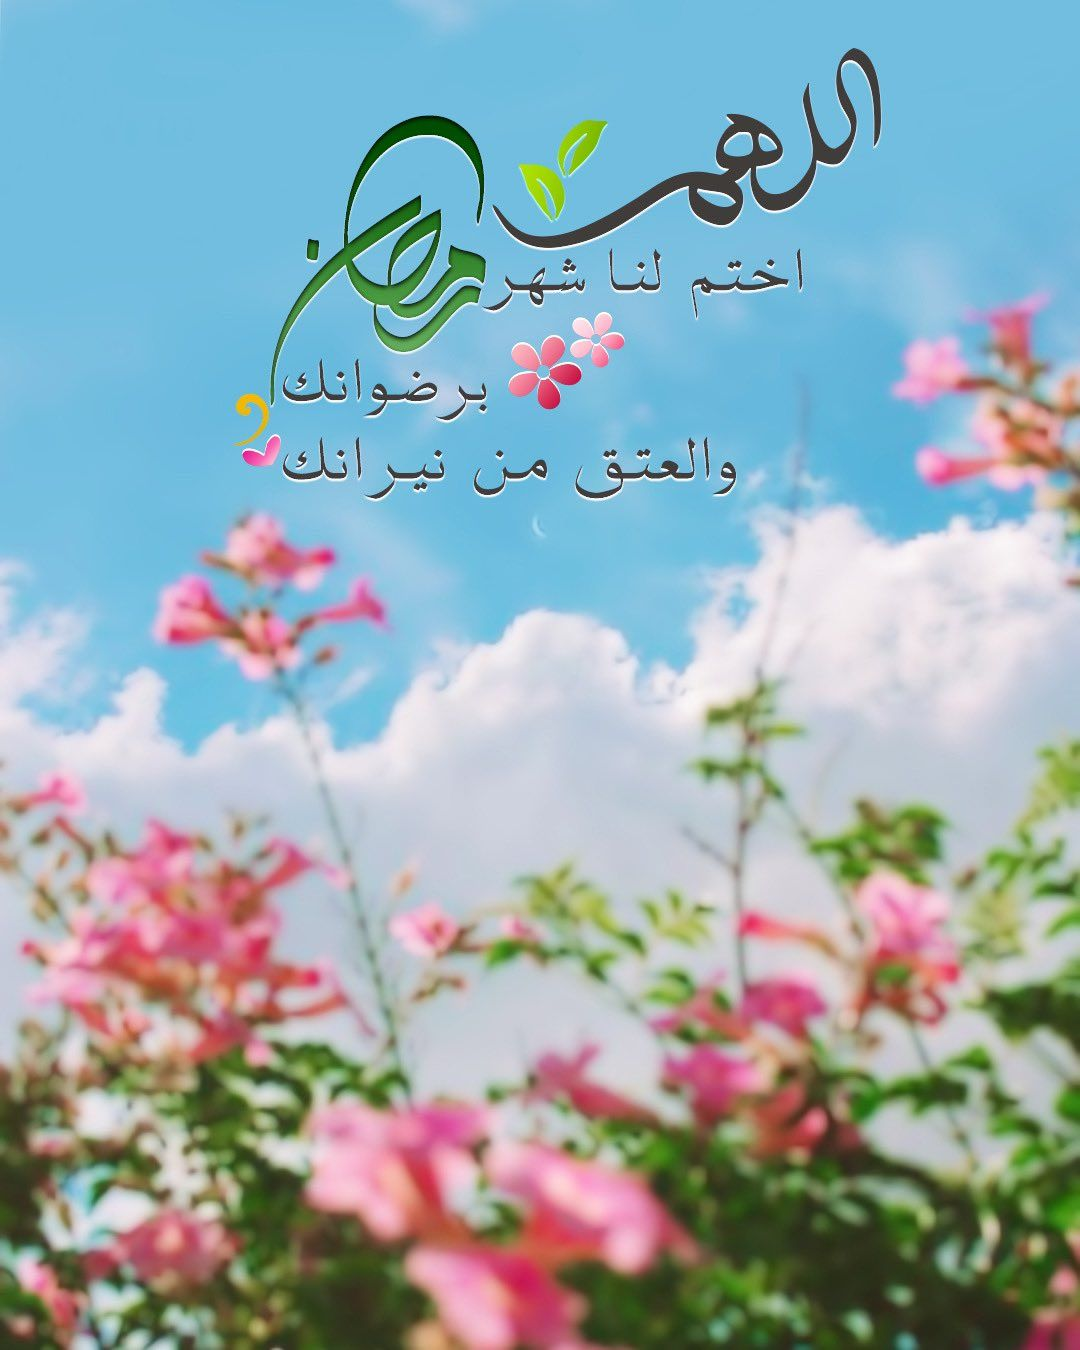 Pin By رغــــــد On رمــــضــان Home Decor Decals Islamic Pictures Home Decor